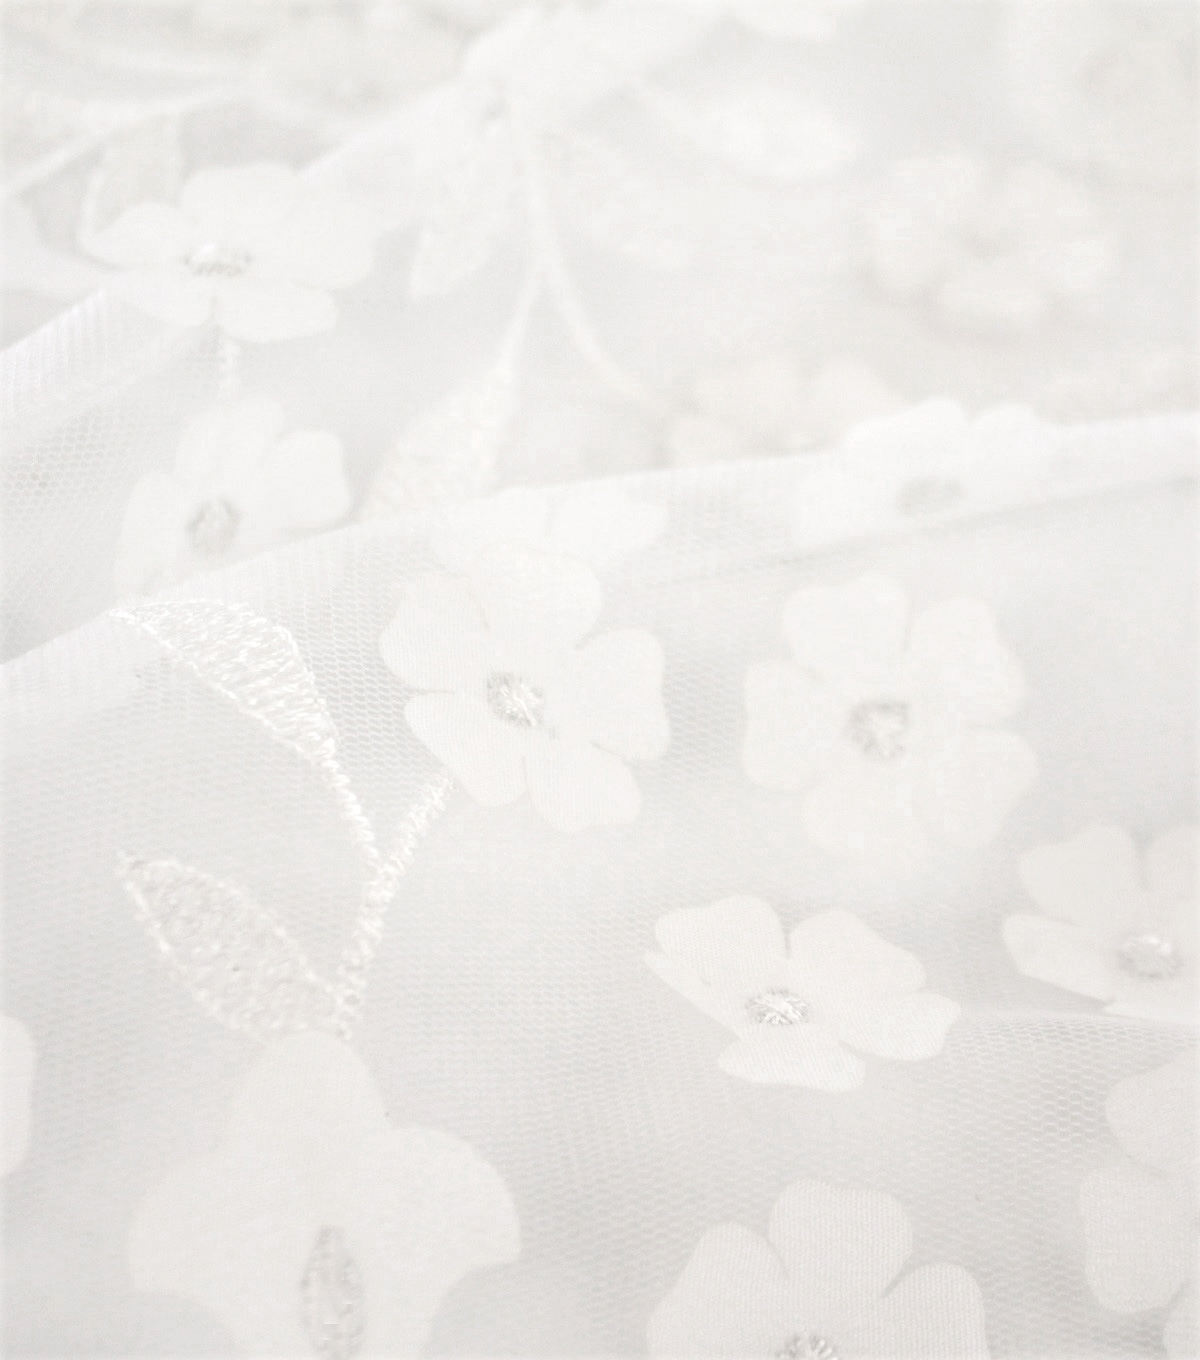 Sew Sweet Dahlia Mesh Fabric-3D White Embellished Floral